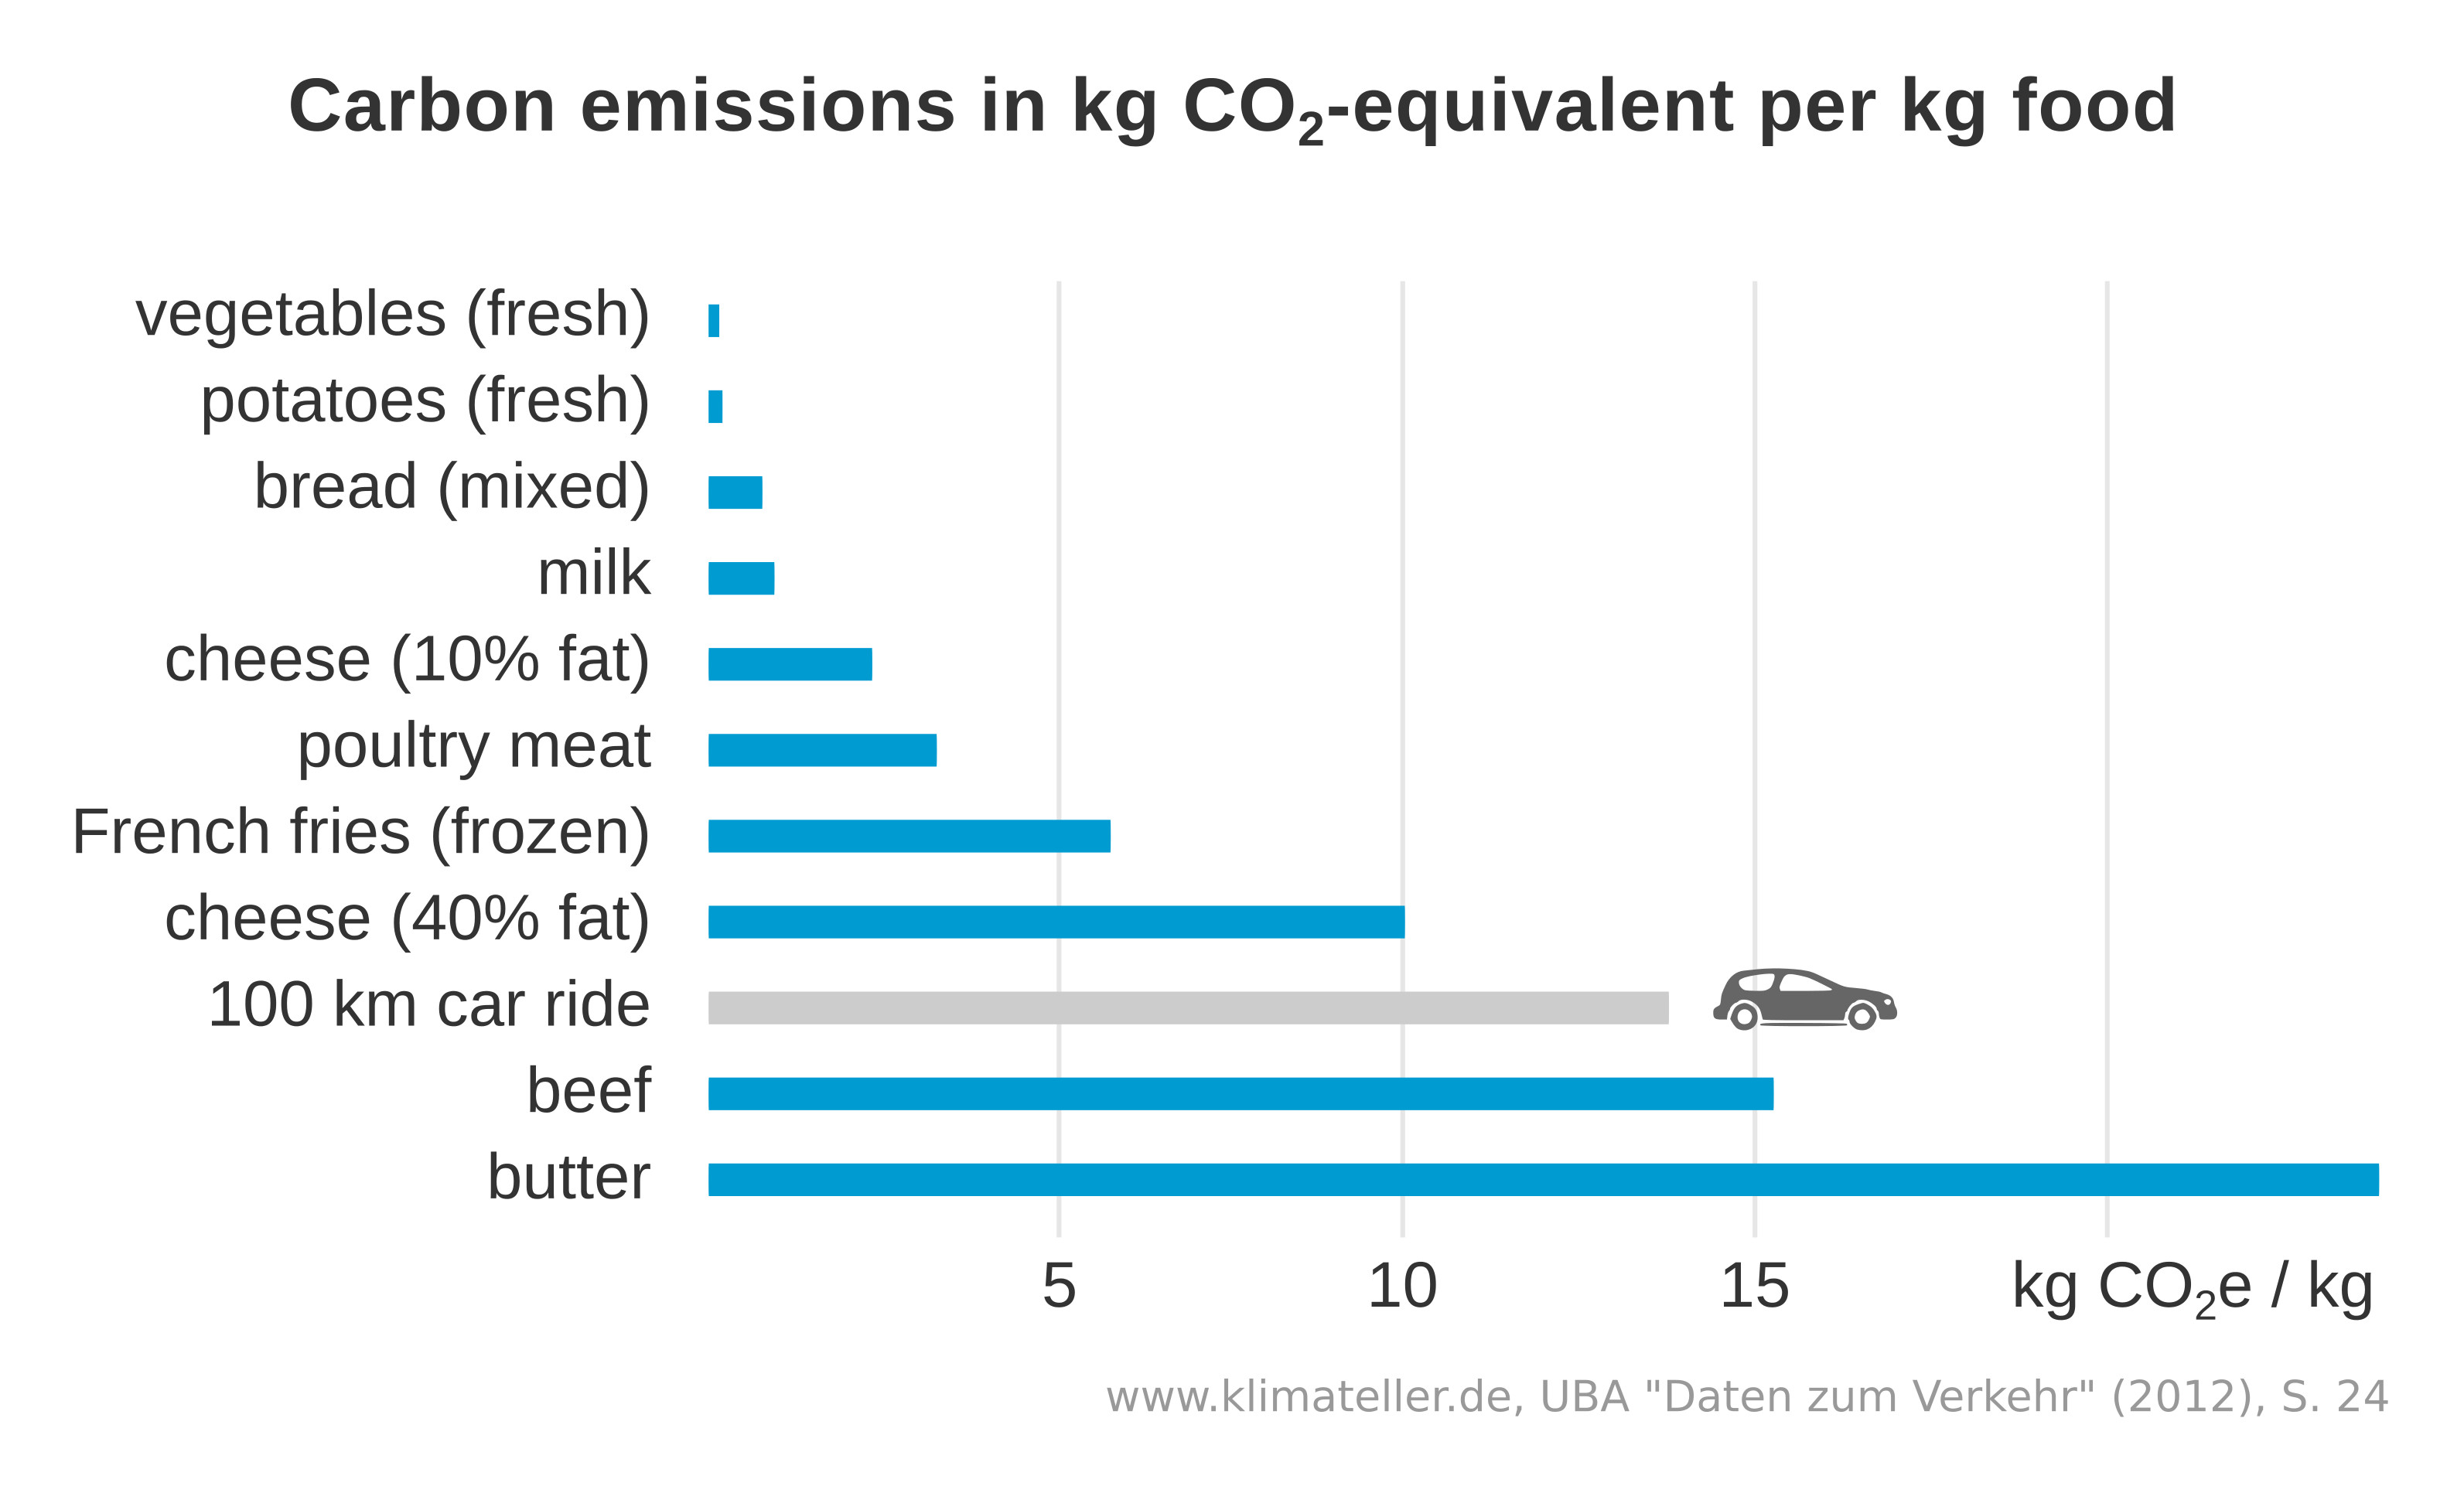 info chart: comparison of carbon emissons of different foods: butter and meat has the most, fresh vegetables the least